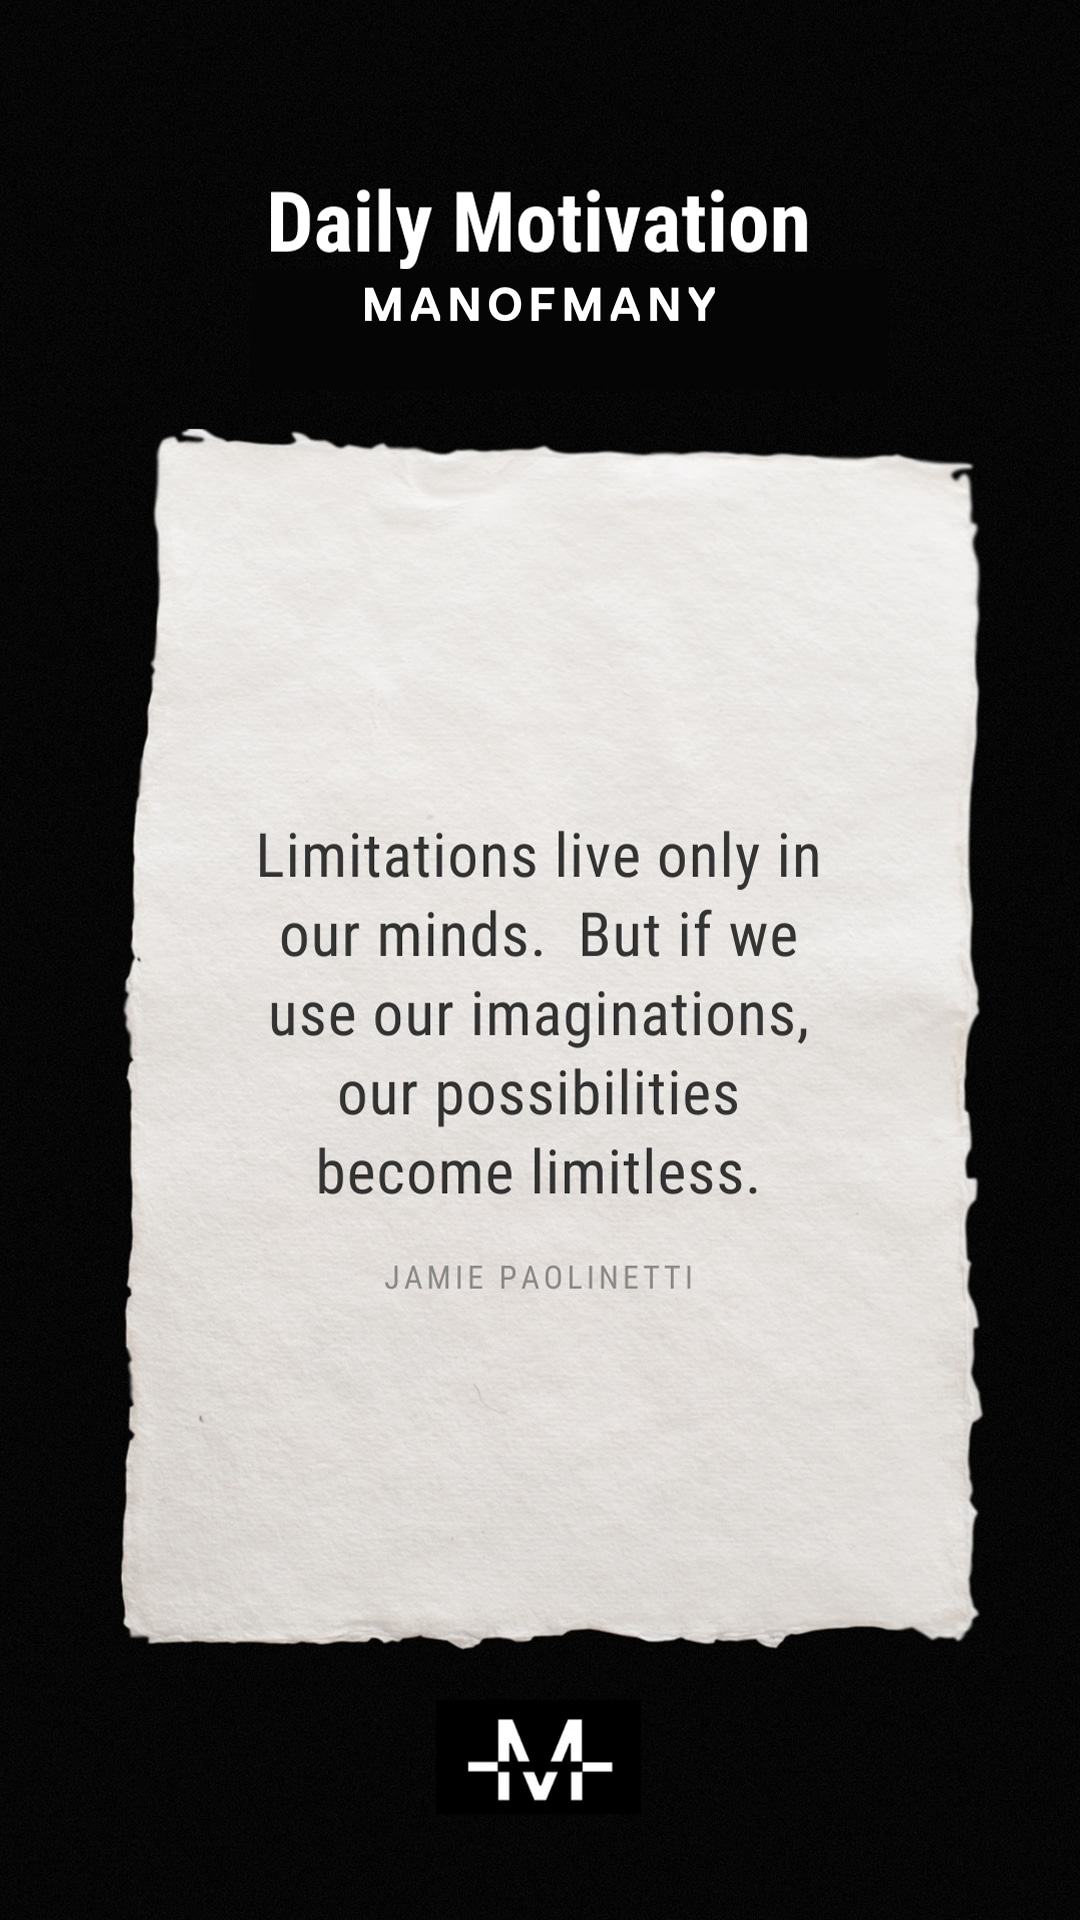 Limitations live only in our minds. But if we use our imaginations, our possibilities become limitless. –Jamie Paolinetti quote